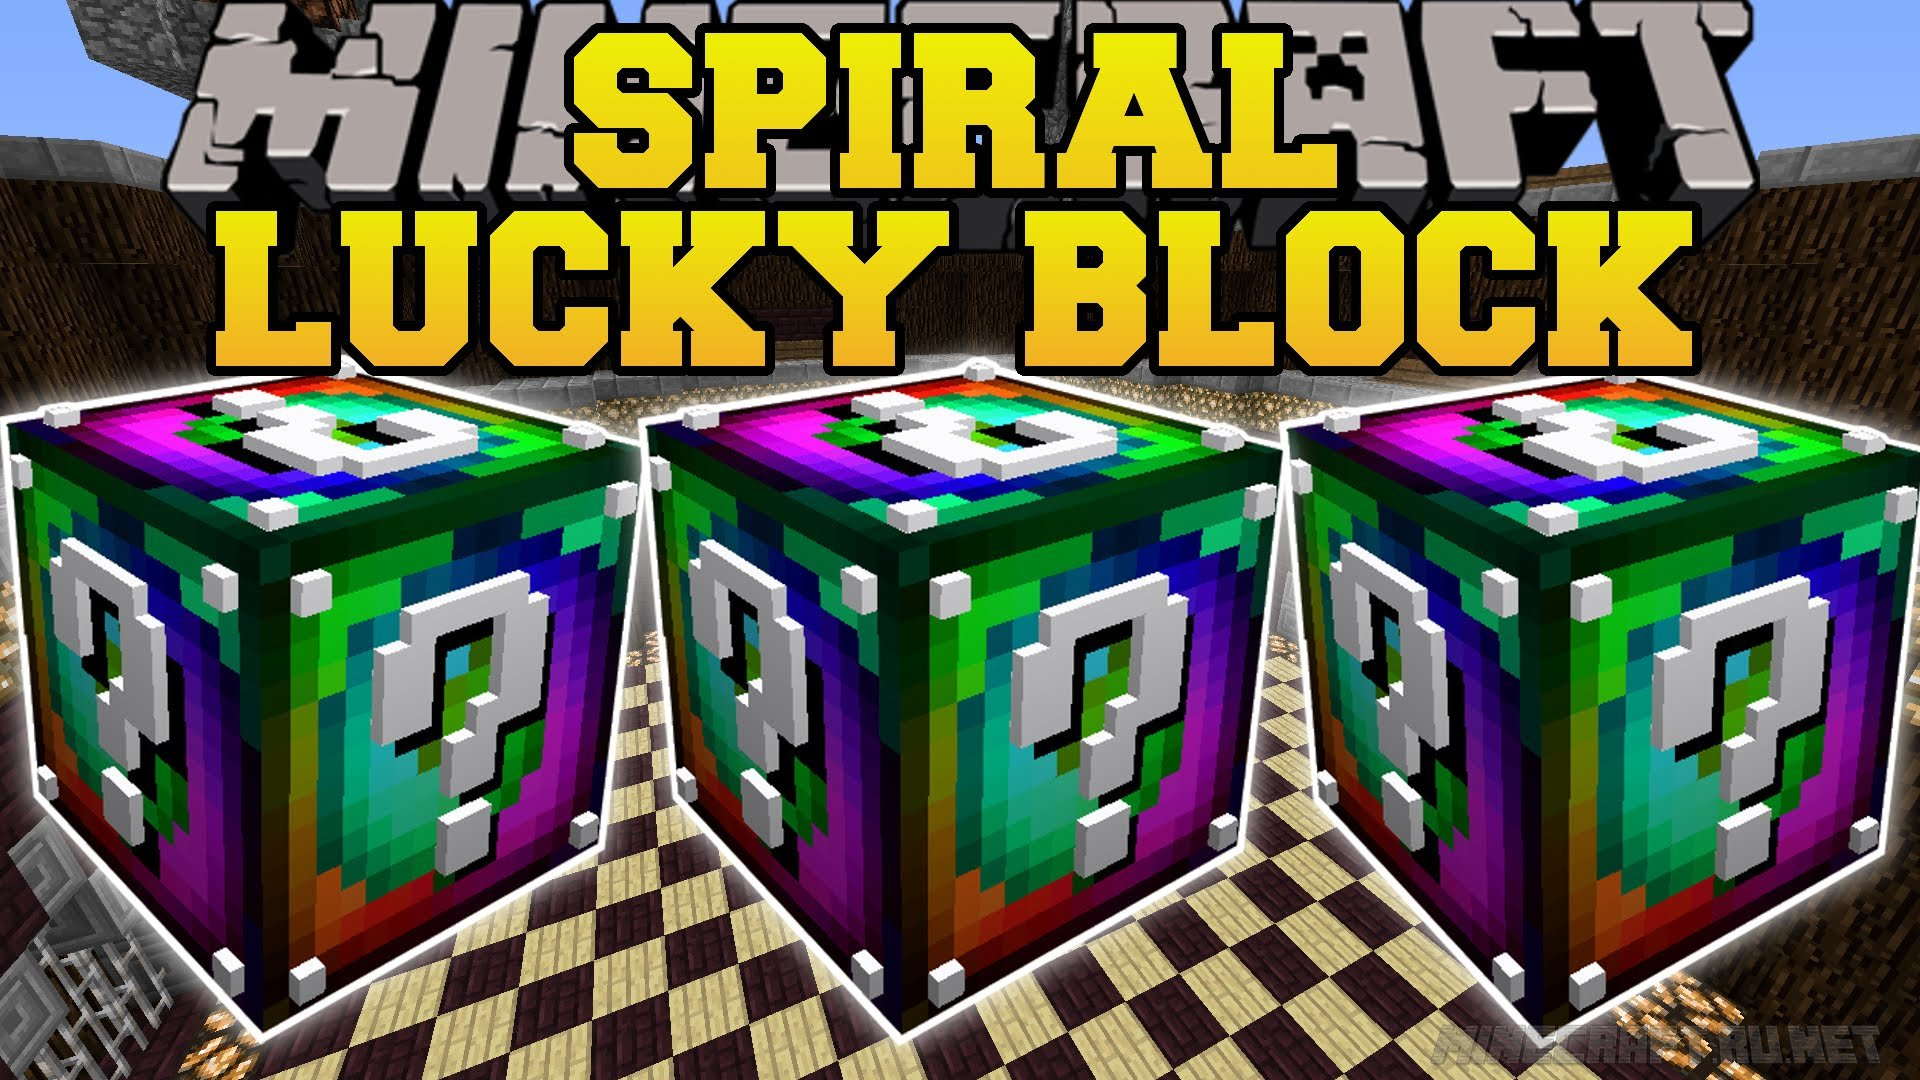 minecraft lucky block casino map 1.7.10